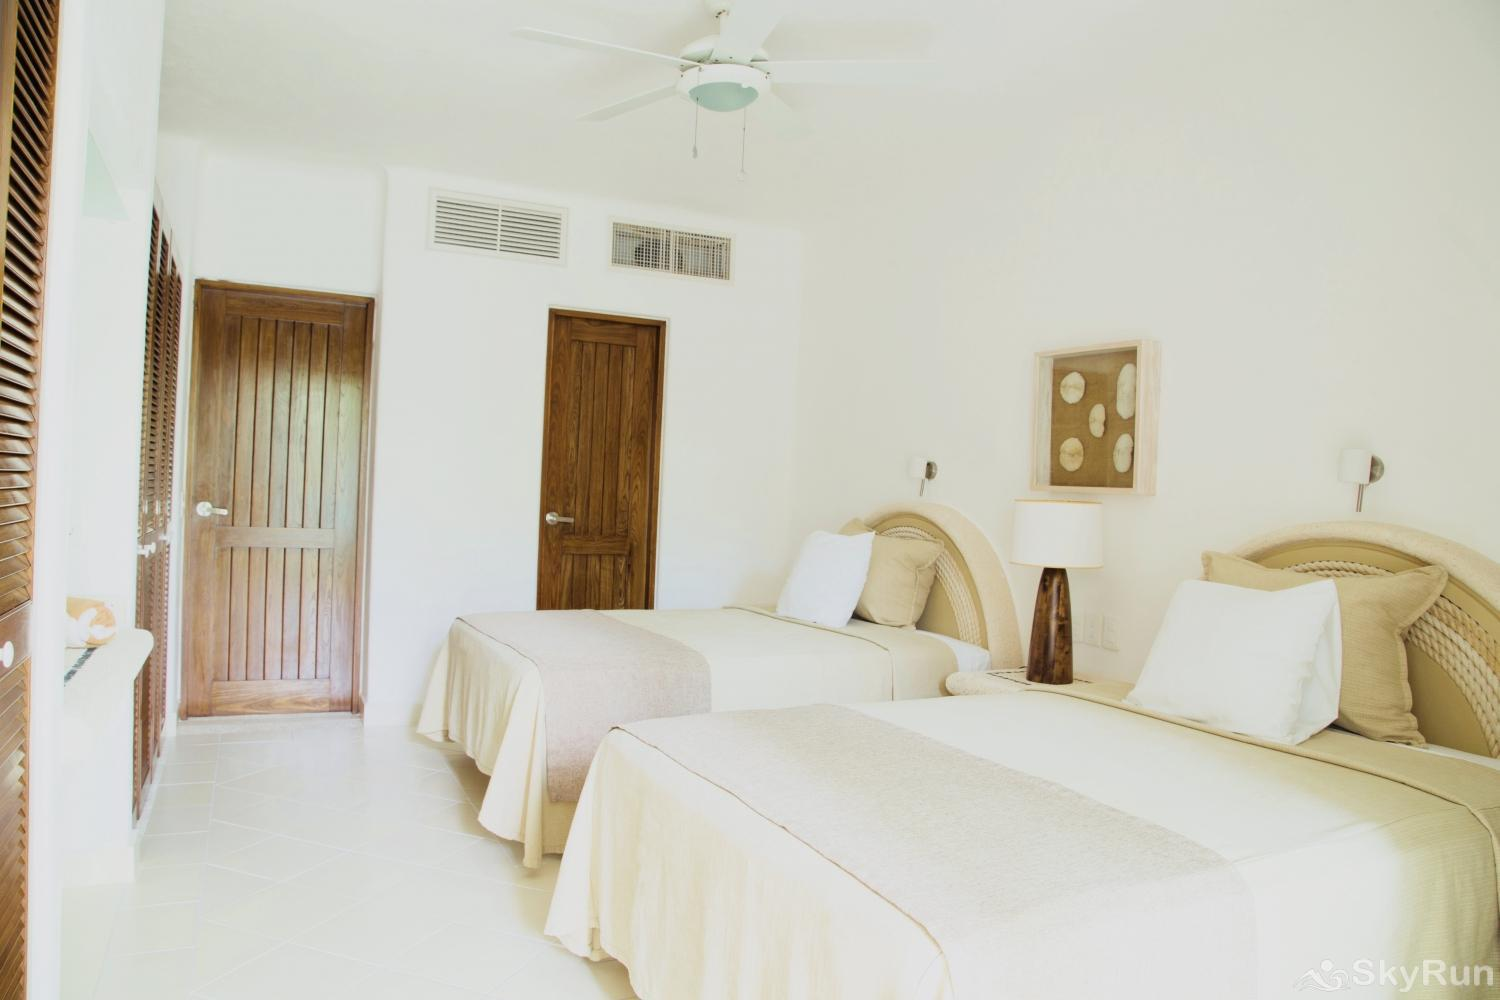 Las villas Akumal 103 3 Bedroom Beachfront 2nd Bedroom 2 Queen Beds